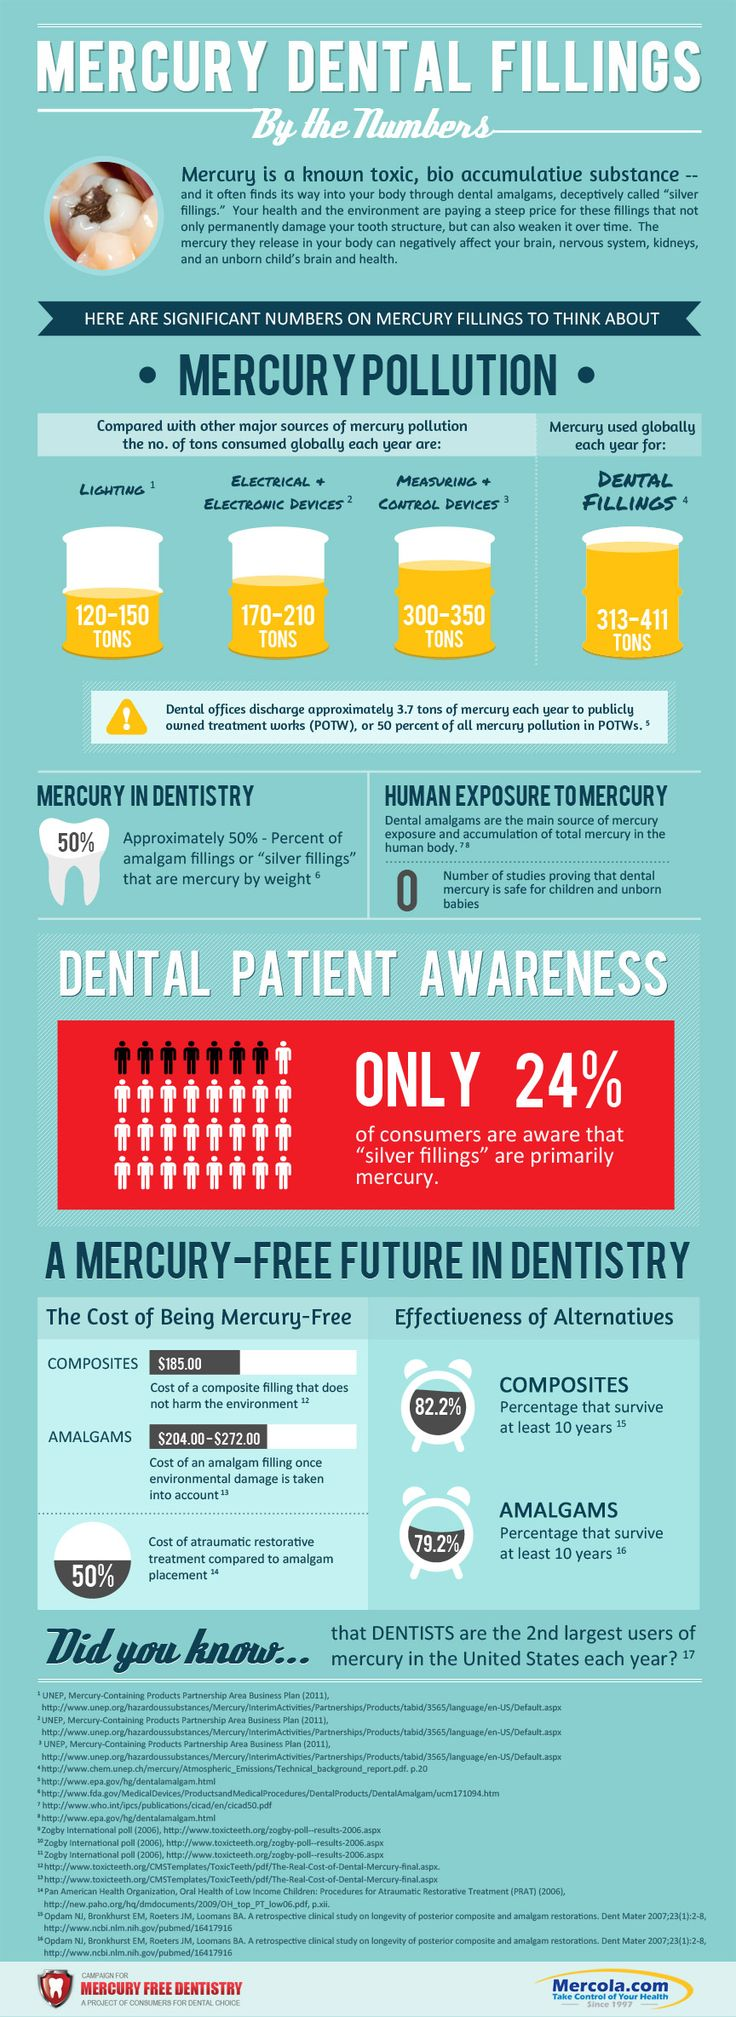 Mercury Dental Fillings